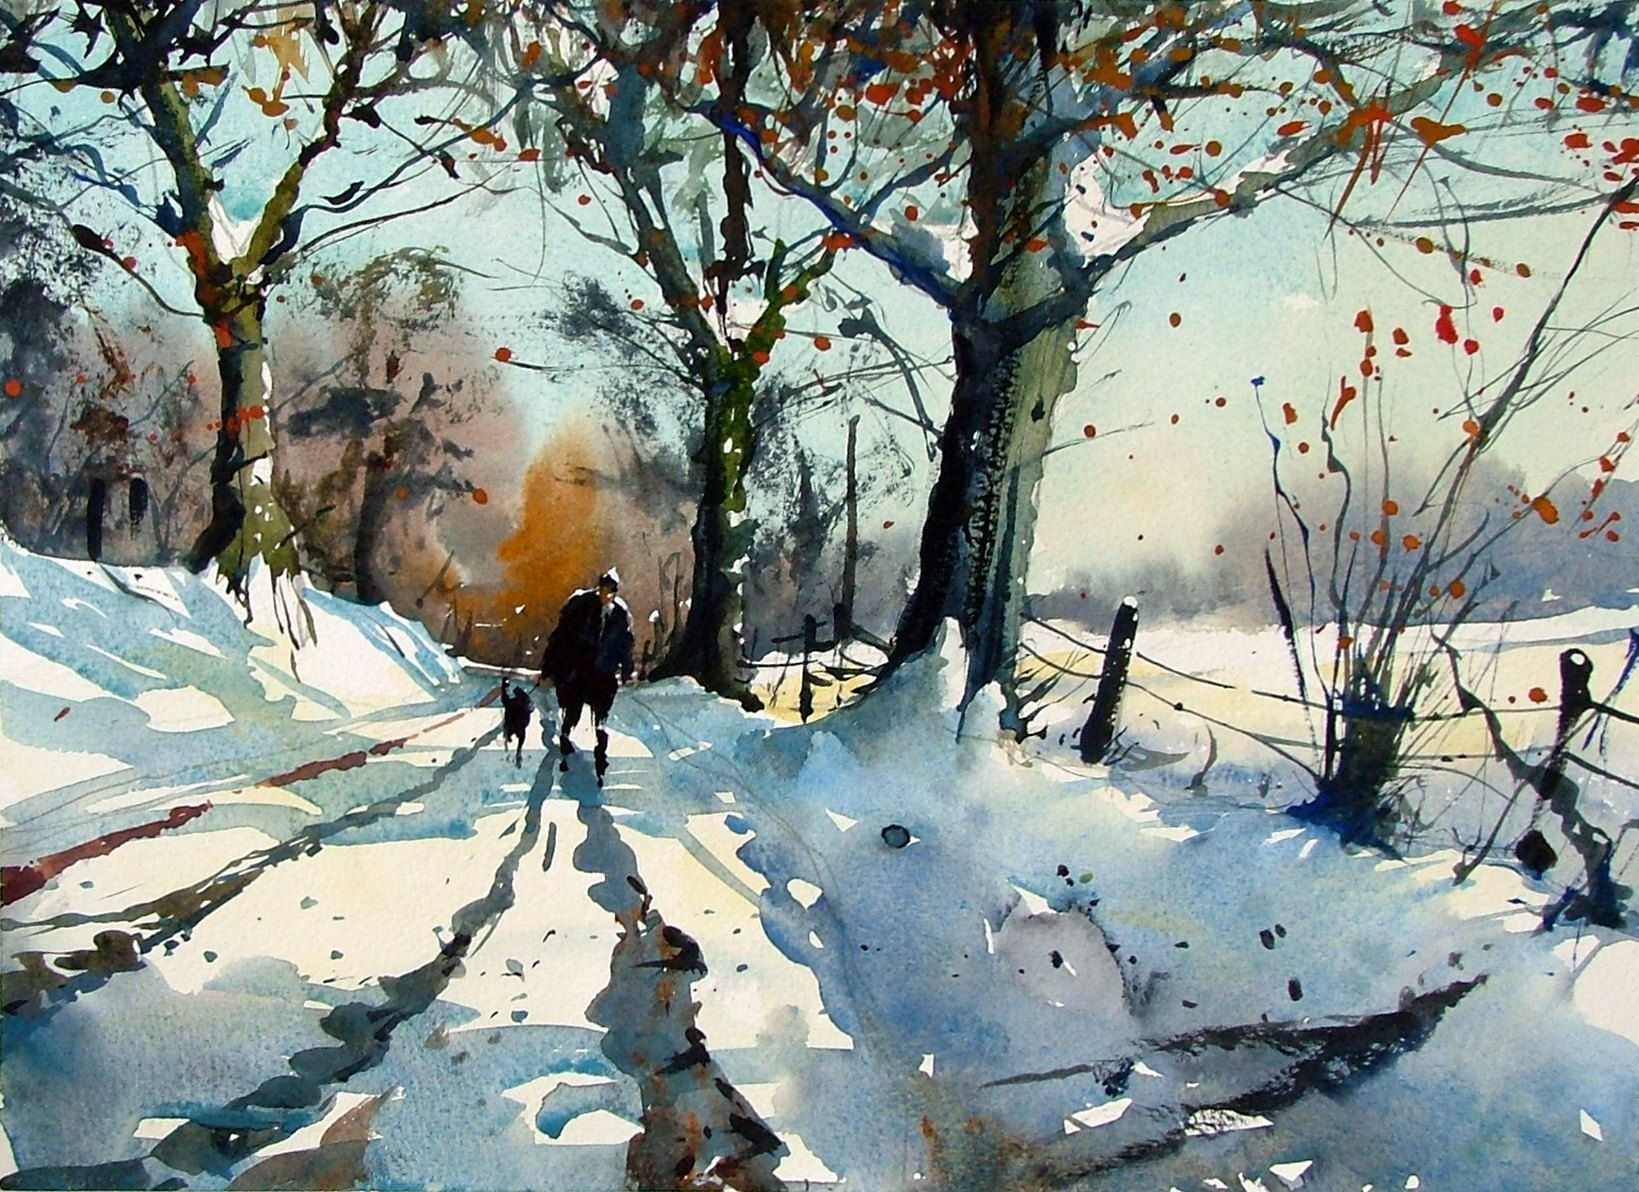 Pin By Toader Virgil On Watercolor Masters In 2020 Watercolor